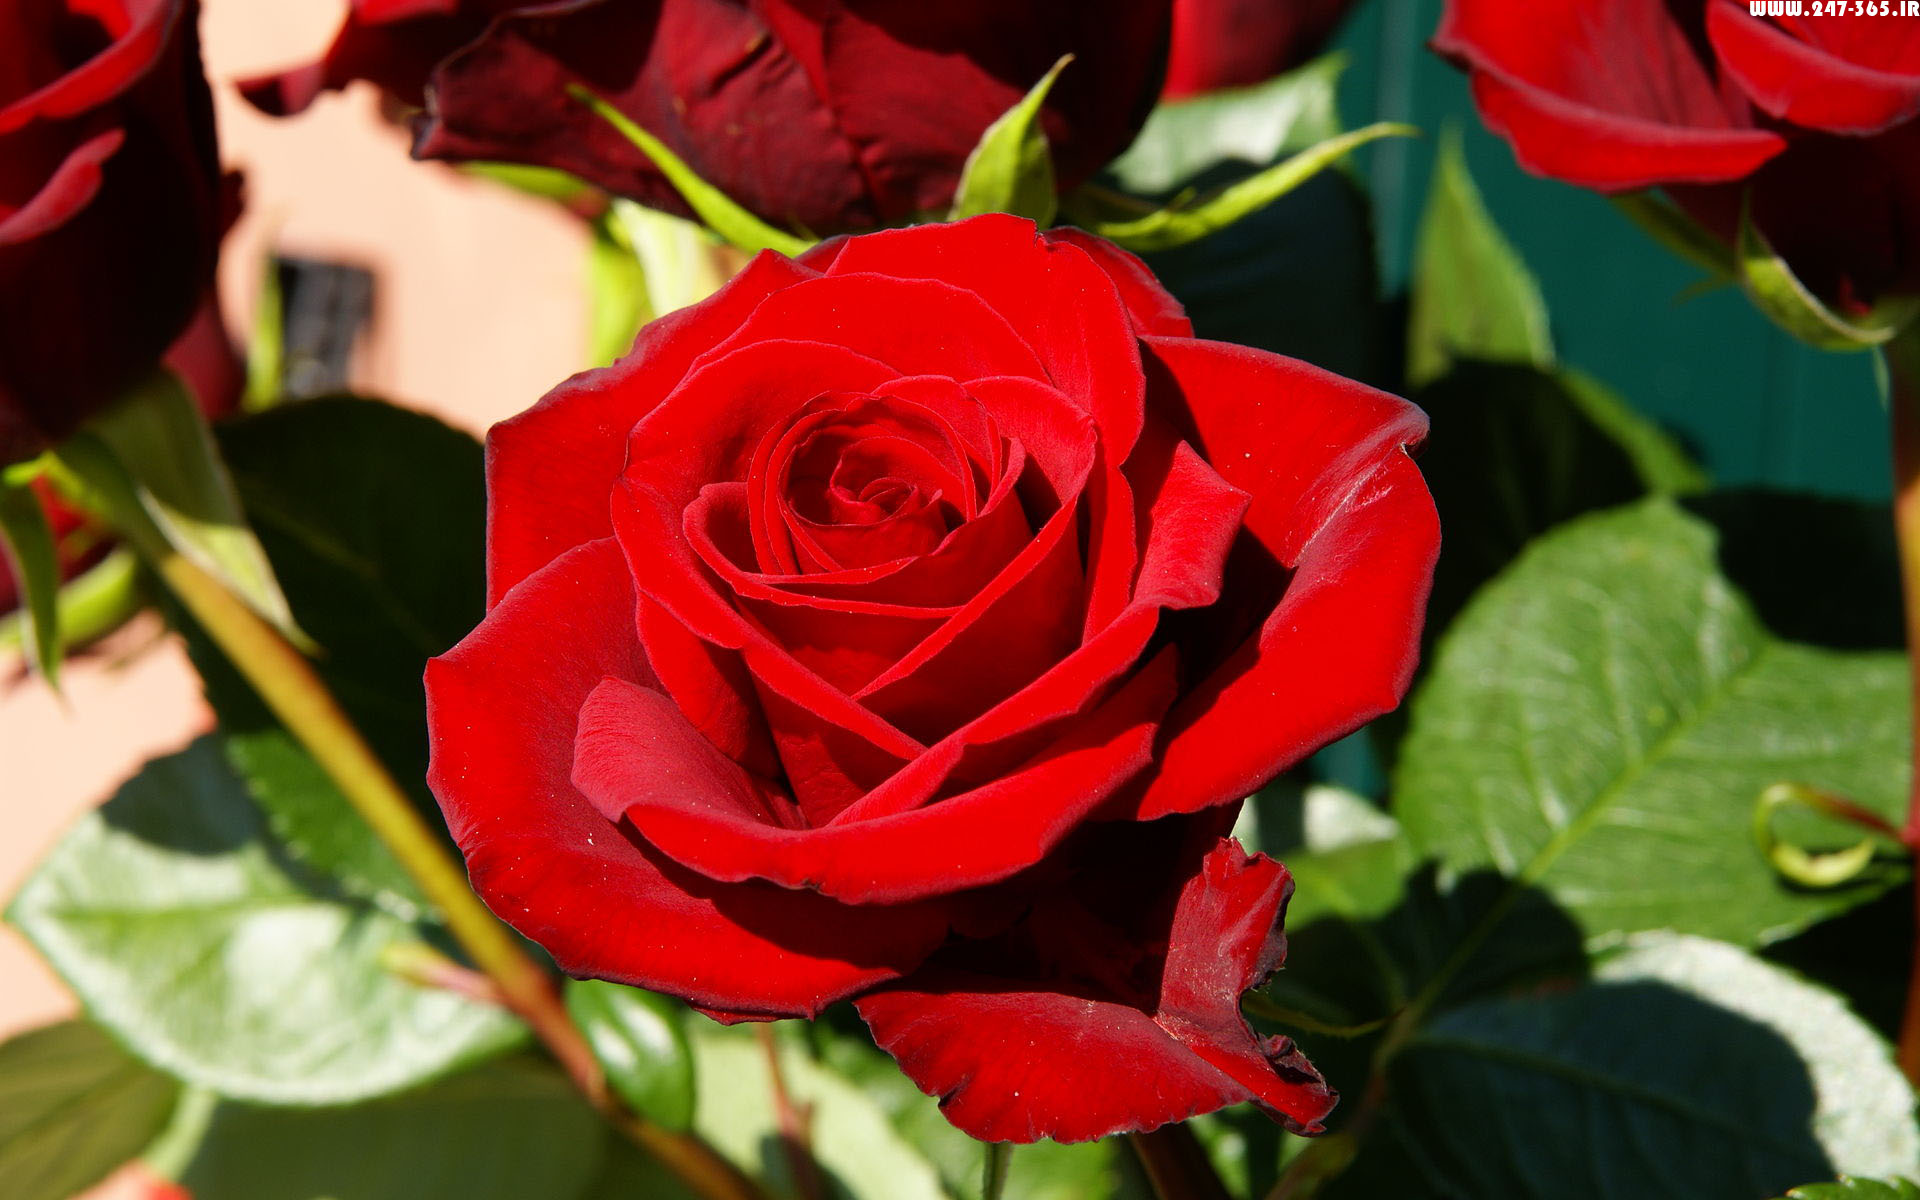 http://dl.247-365.ir/pic/gol/red_rose_3/Red_Rose_3_15.jpg